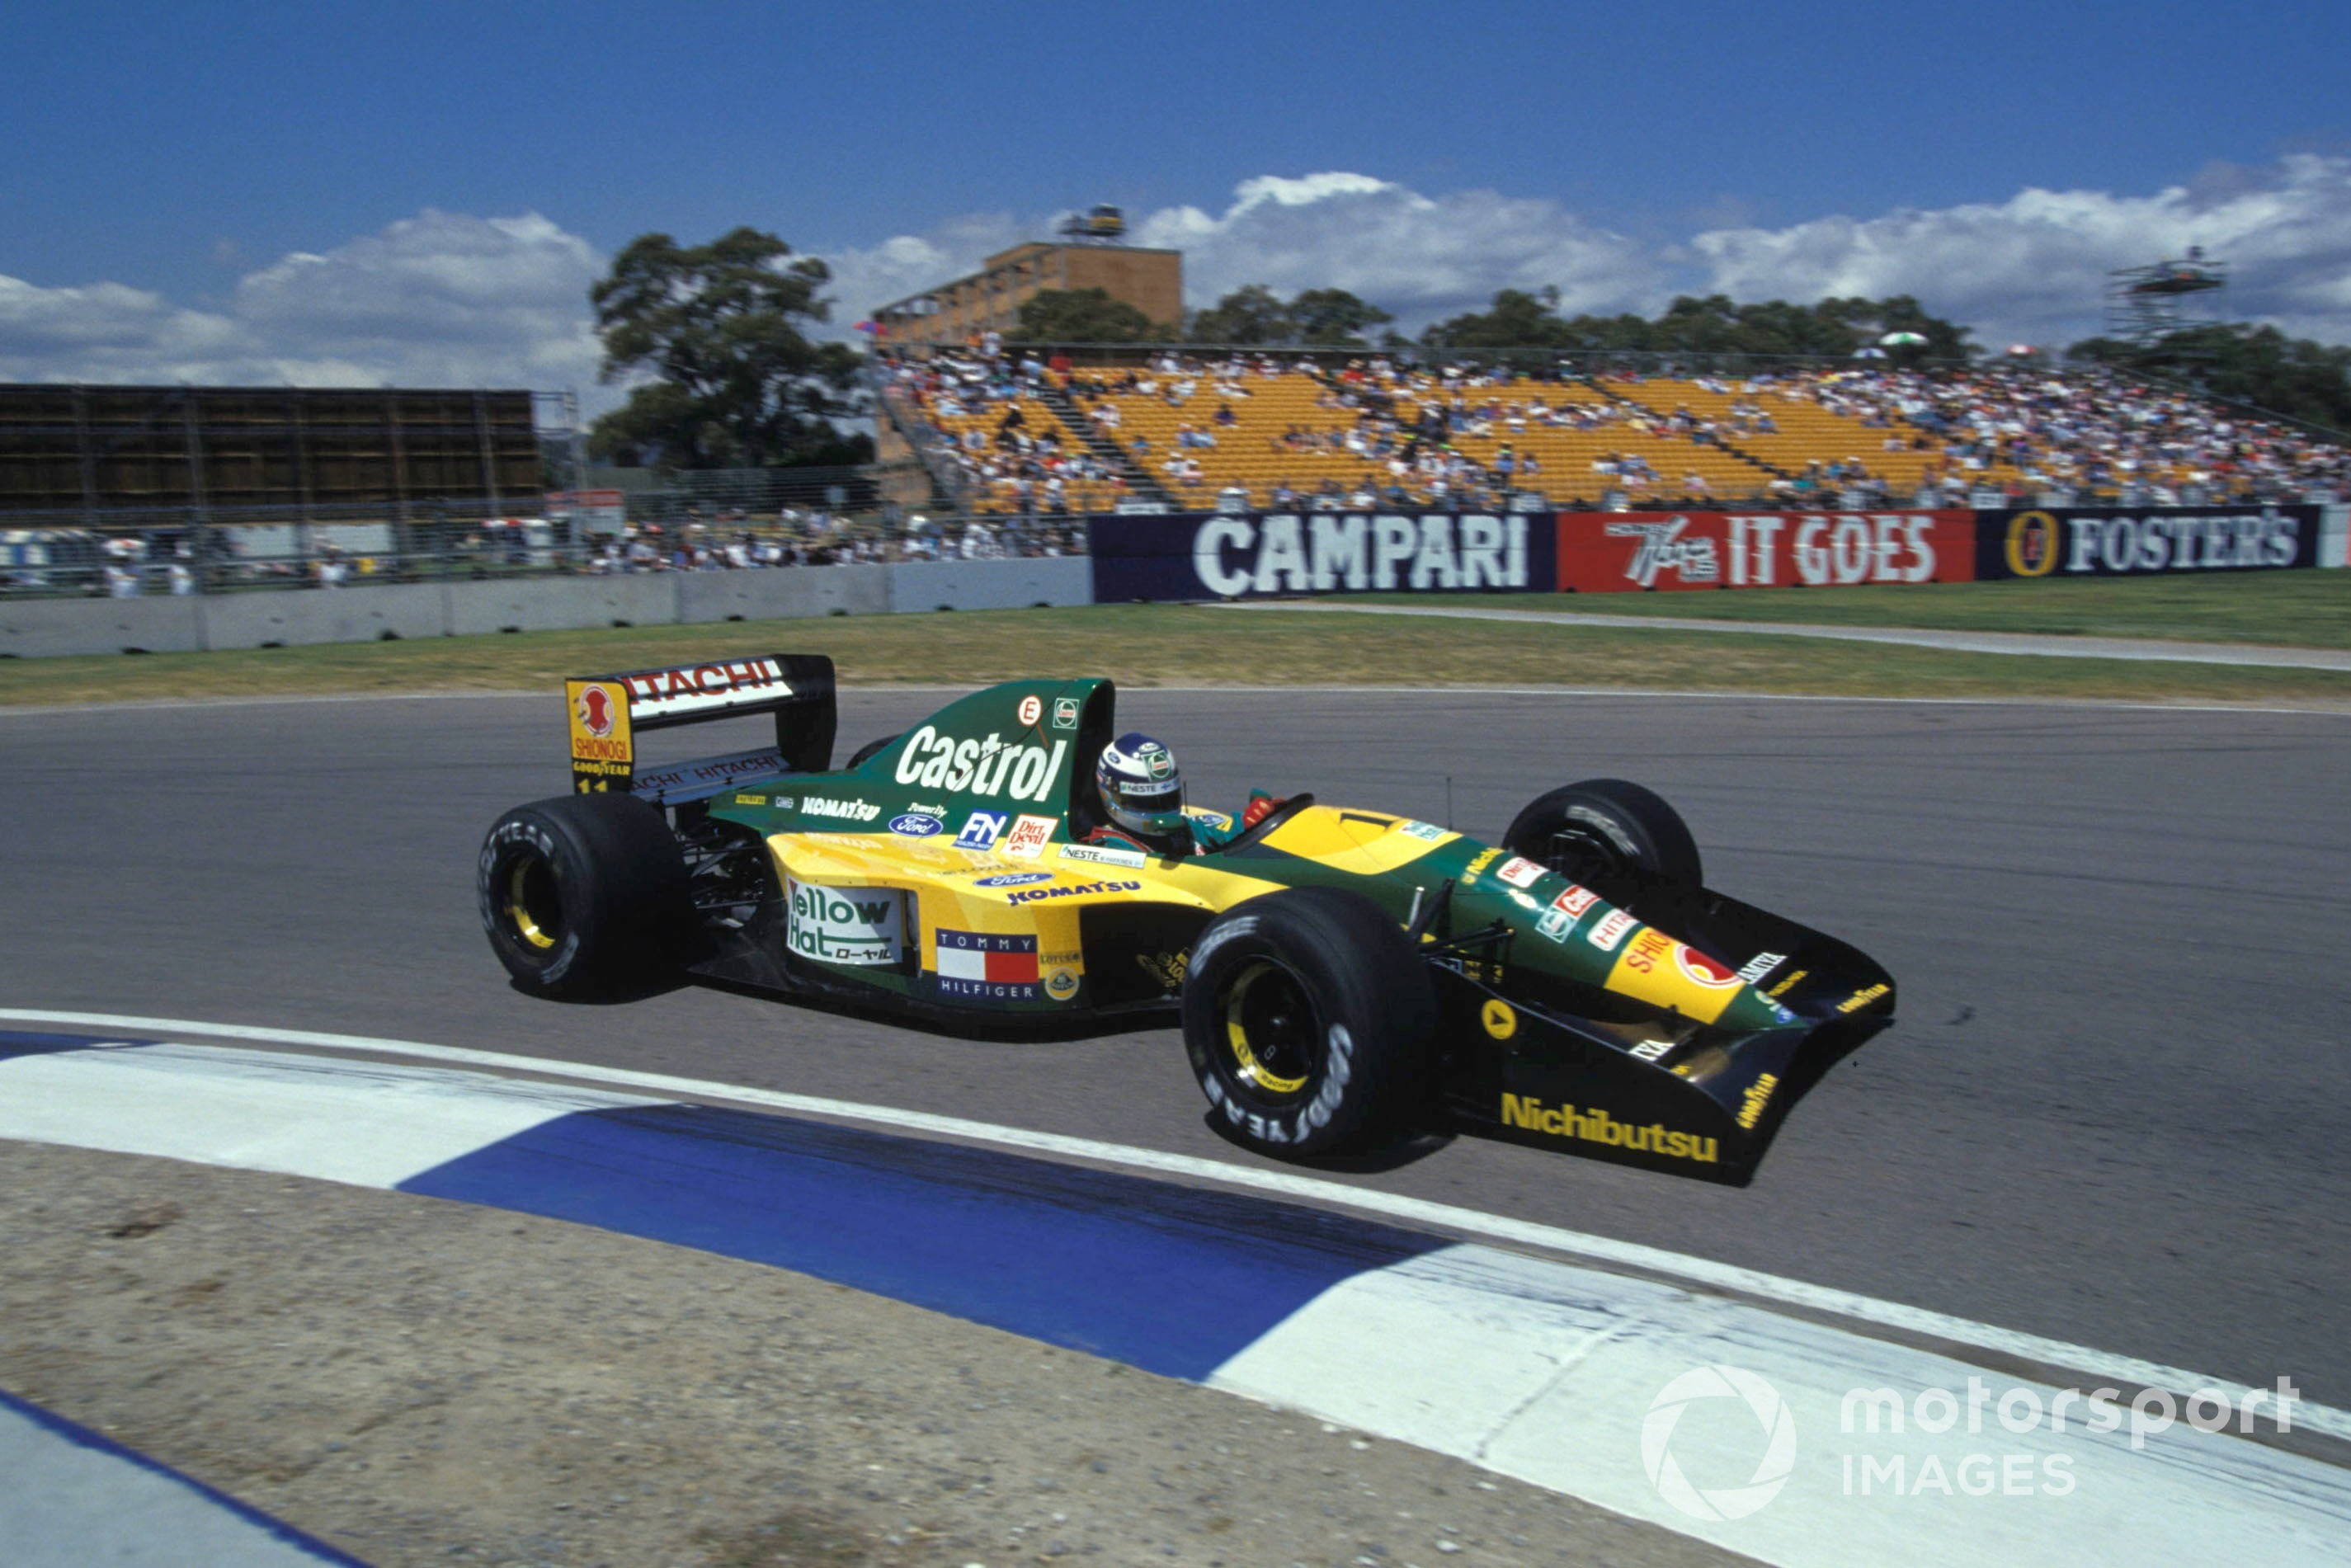 Mika Hakkinen in the Lotus-Ford 107 at the 1992 Australian GP